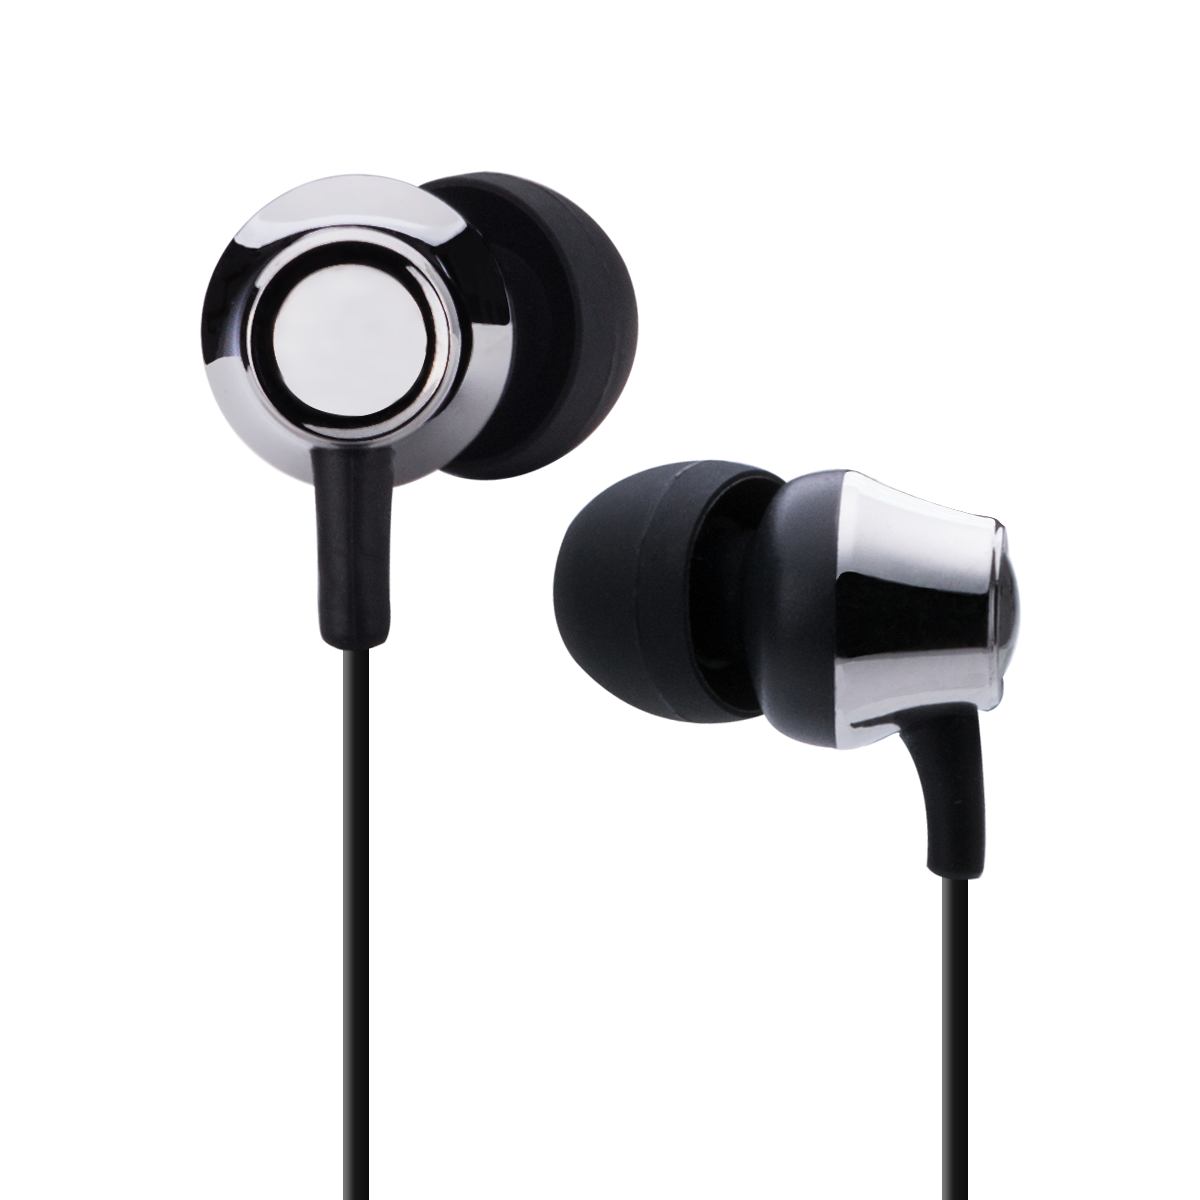 AGPTEK K3 In-Ear Earbud Headphones with Microphone, Noise Isolating Corded Headsets for iPhone, Smartphone Etc, Black